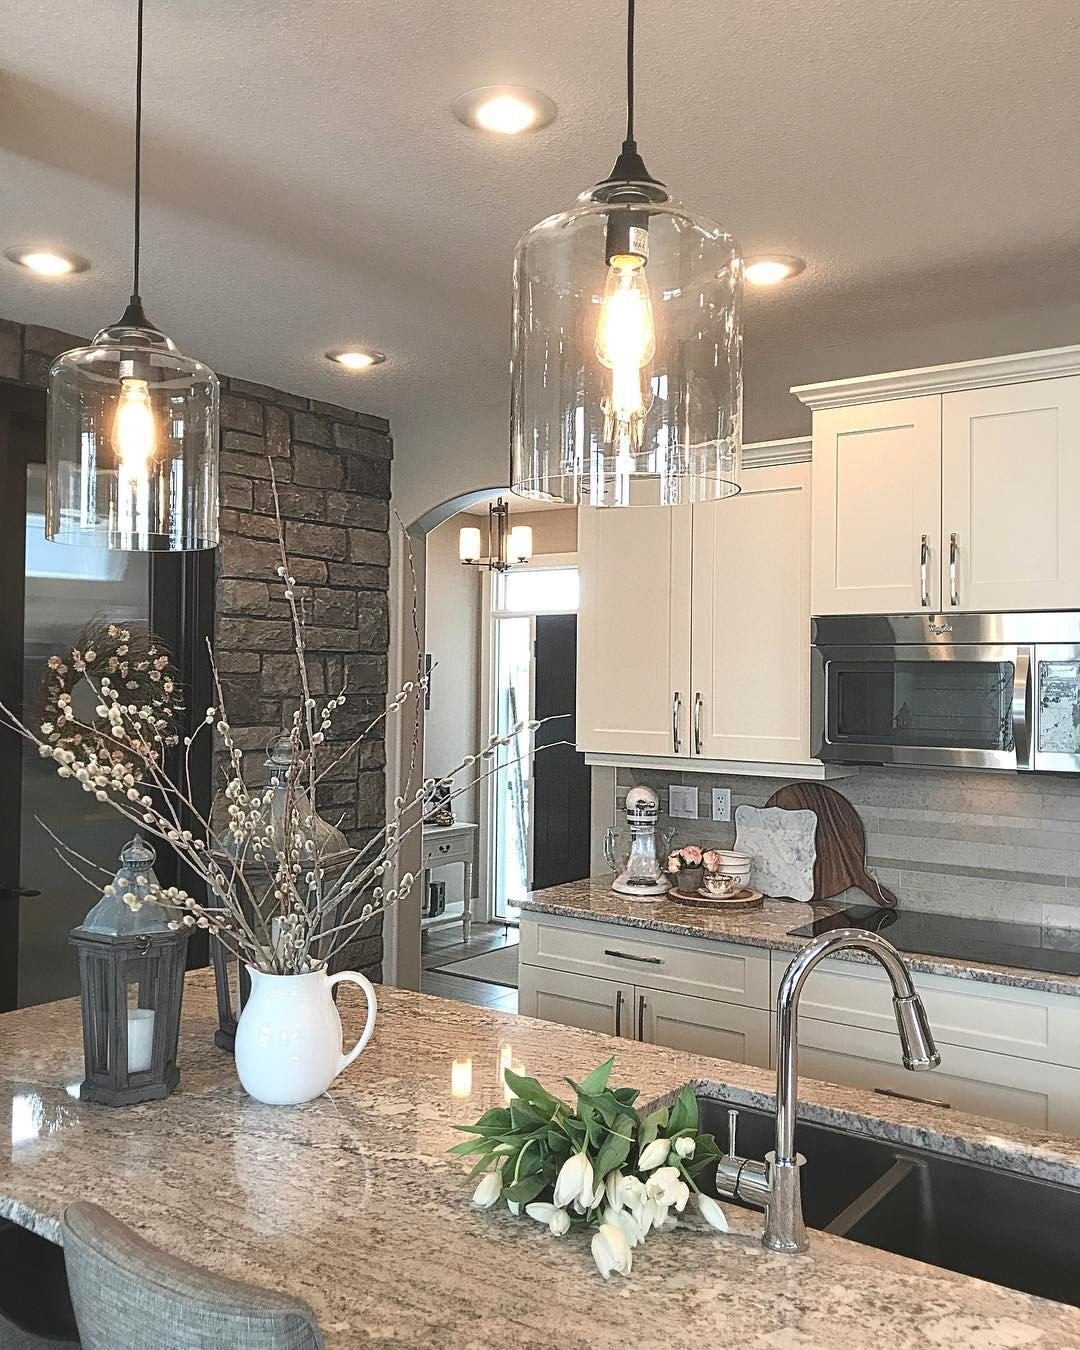 4 Types of Kitchen Lighting- Anything You Need to Know